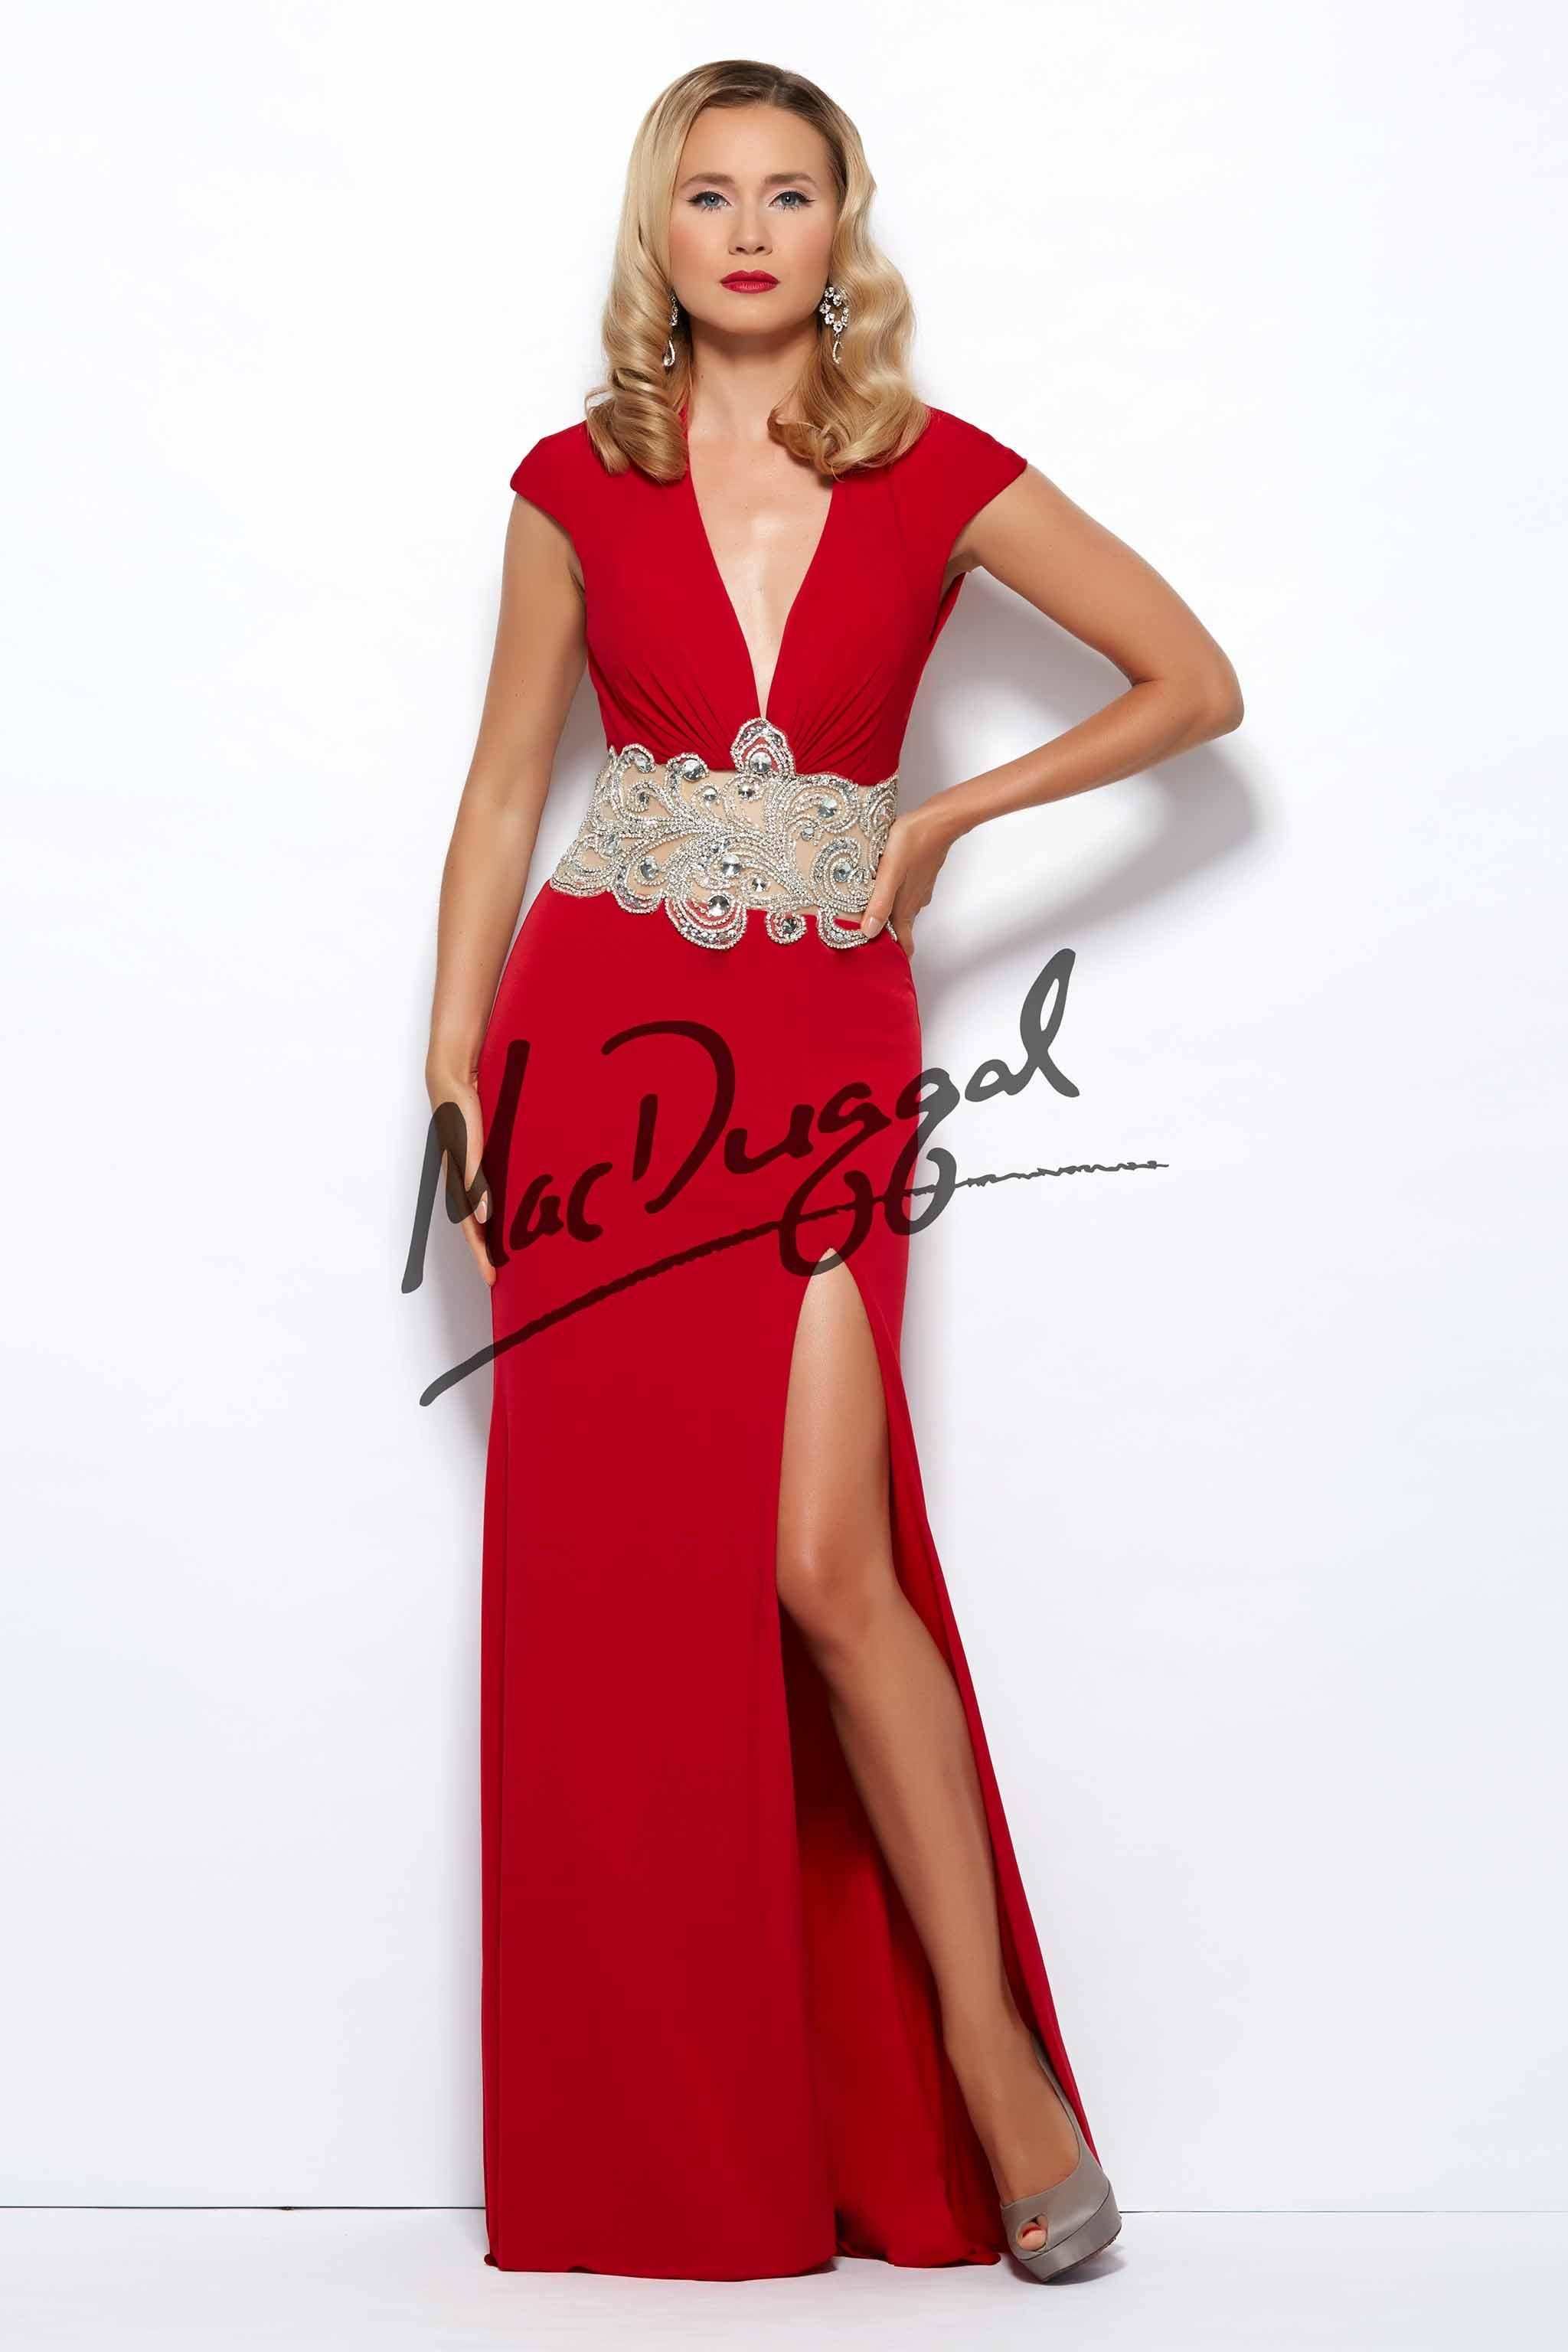 Black white red r our price style r macduggal